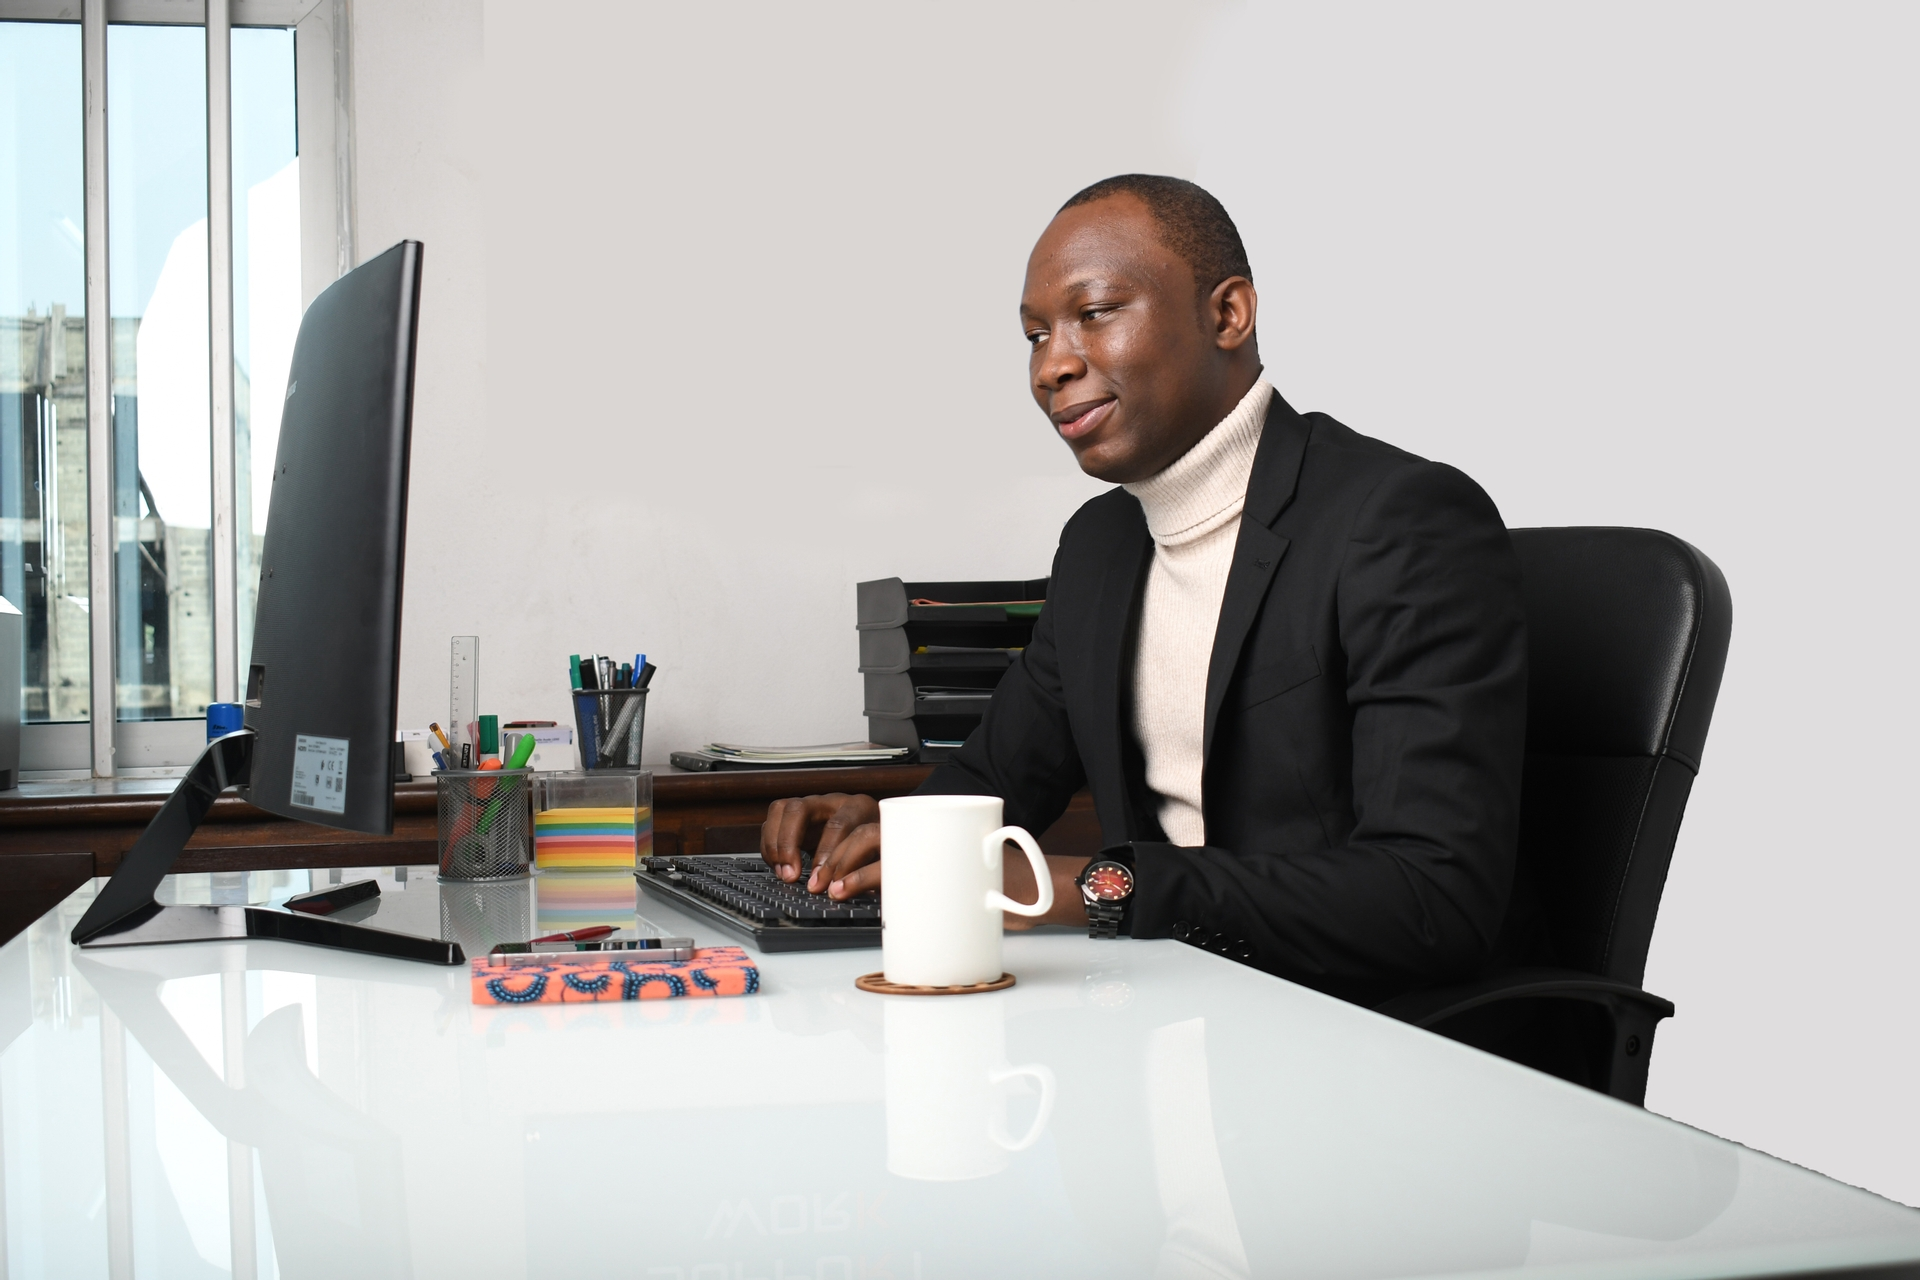 Africa, free, photo, people, office, computer, smile, laugh, secretary, facial expression, coffee, tea, mug, posture, gestural, look, work, man, office, focus, concentration